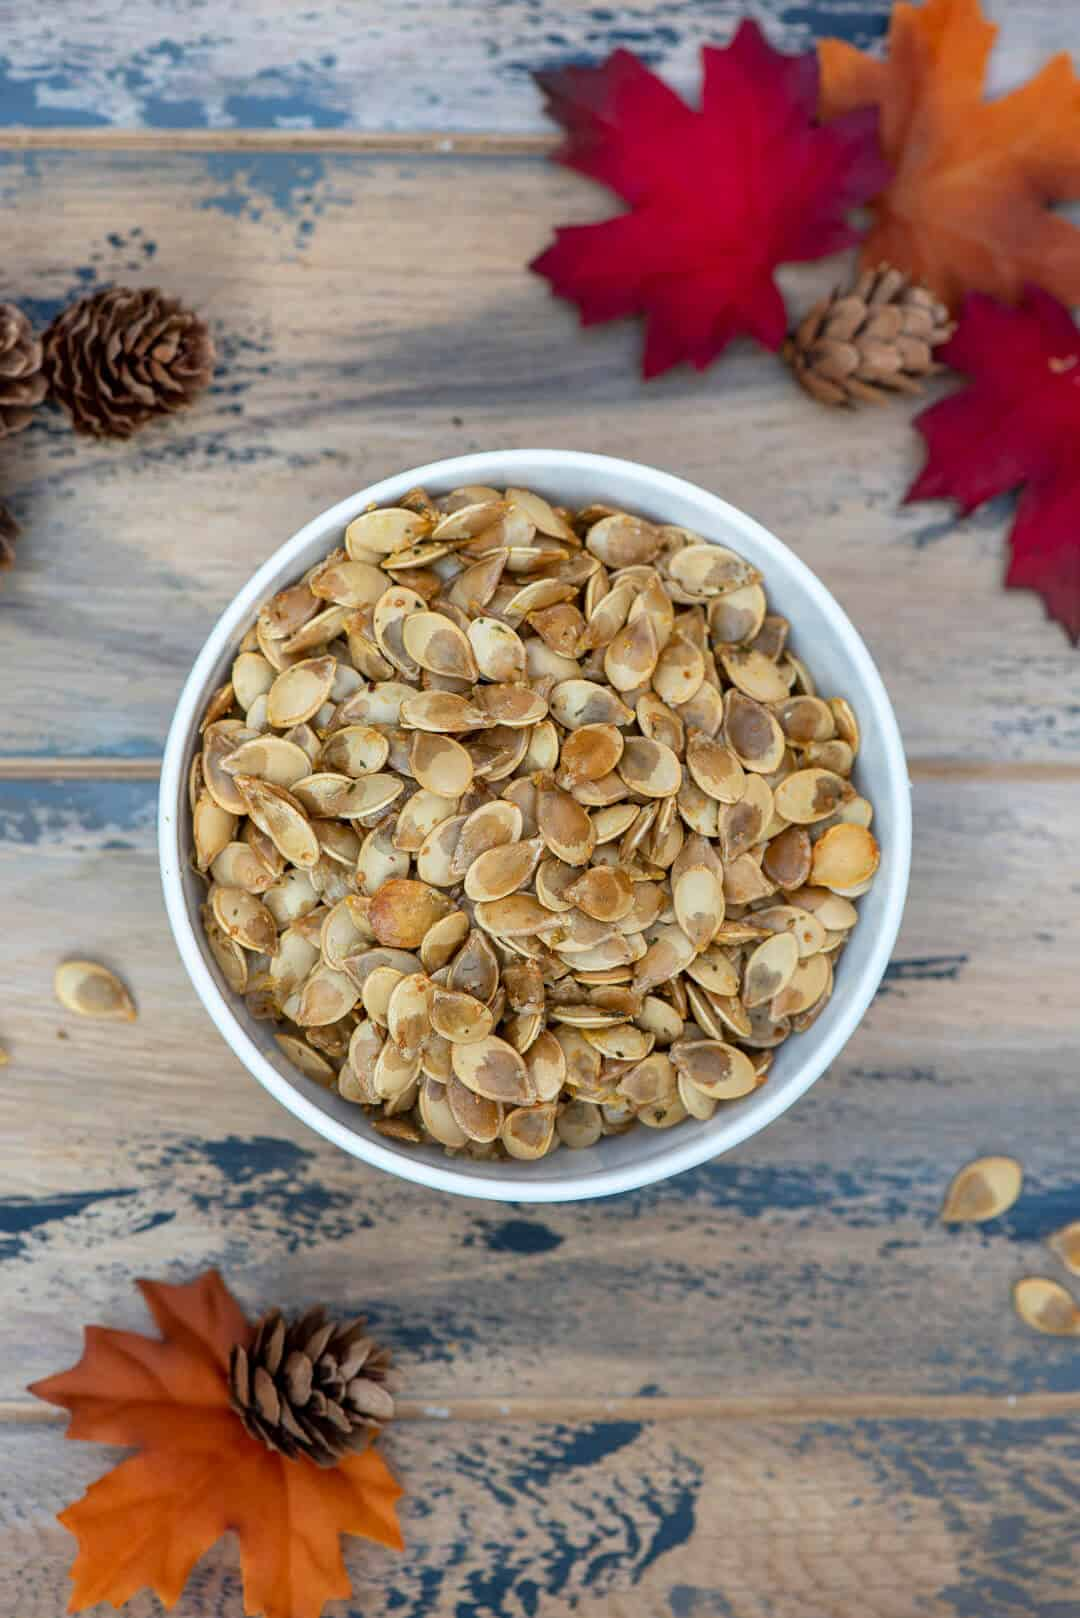 An over the top shot of the seeds in a white bowl with fall leaves and pine cones scattered around it.